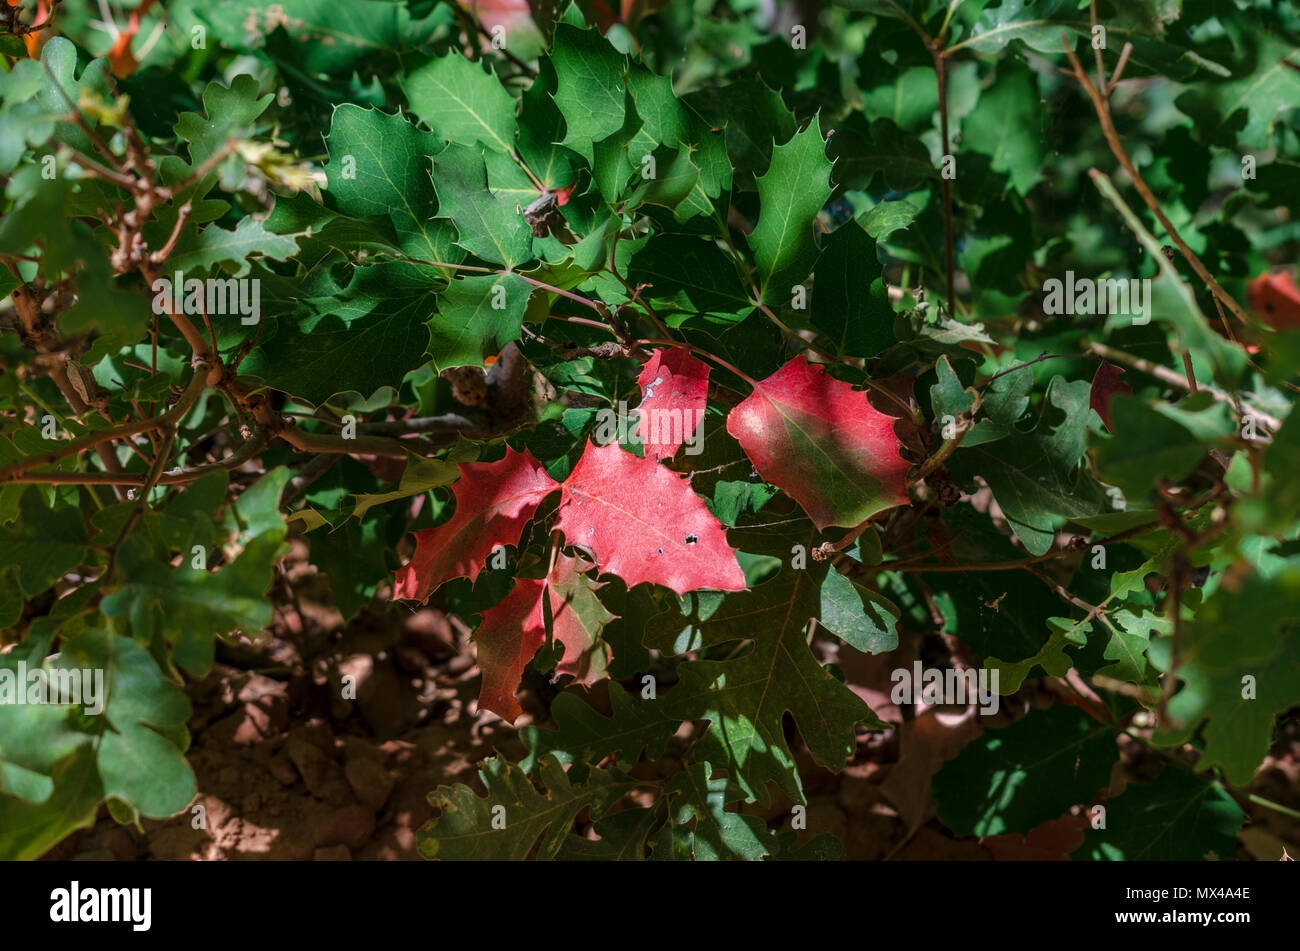 Pointy red and green leaves, closeup, no berries. American holly. - Stock Image